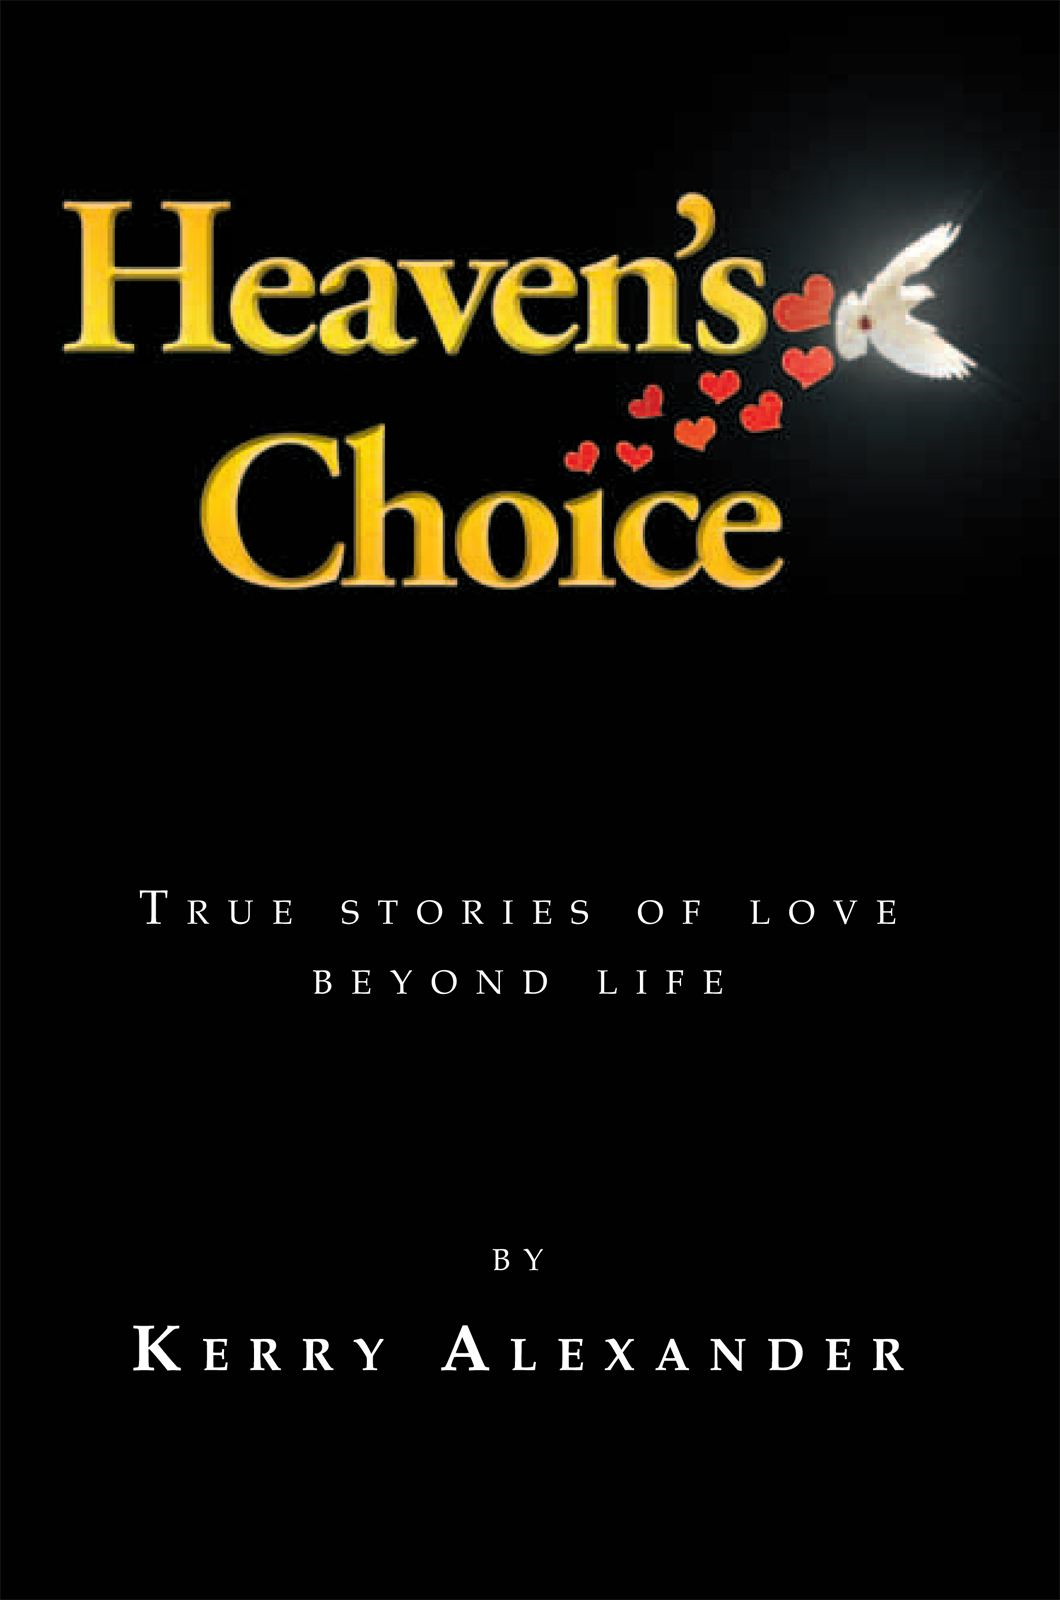 HEAVEN'S CHOICE By: Kerry Alexander